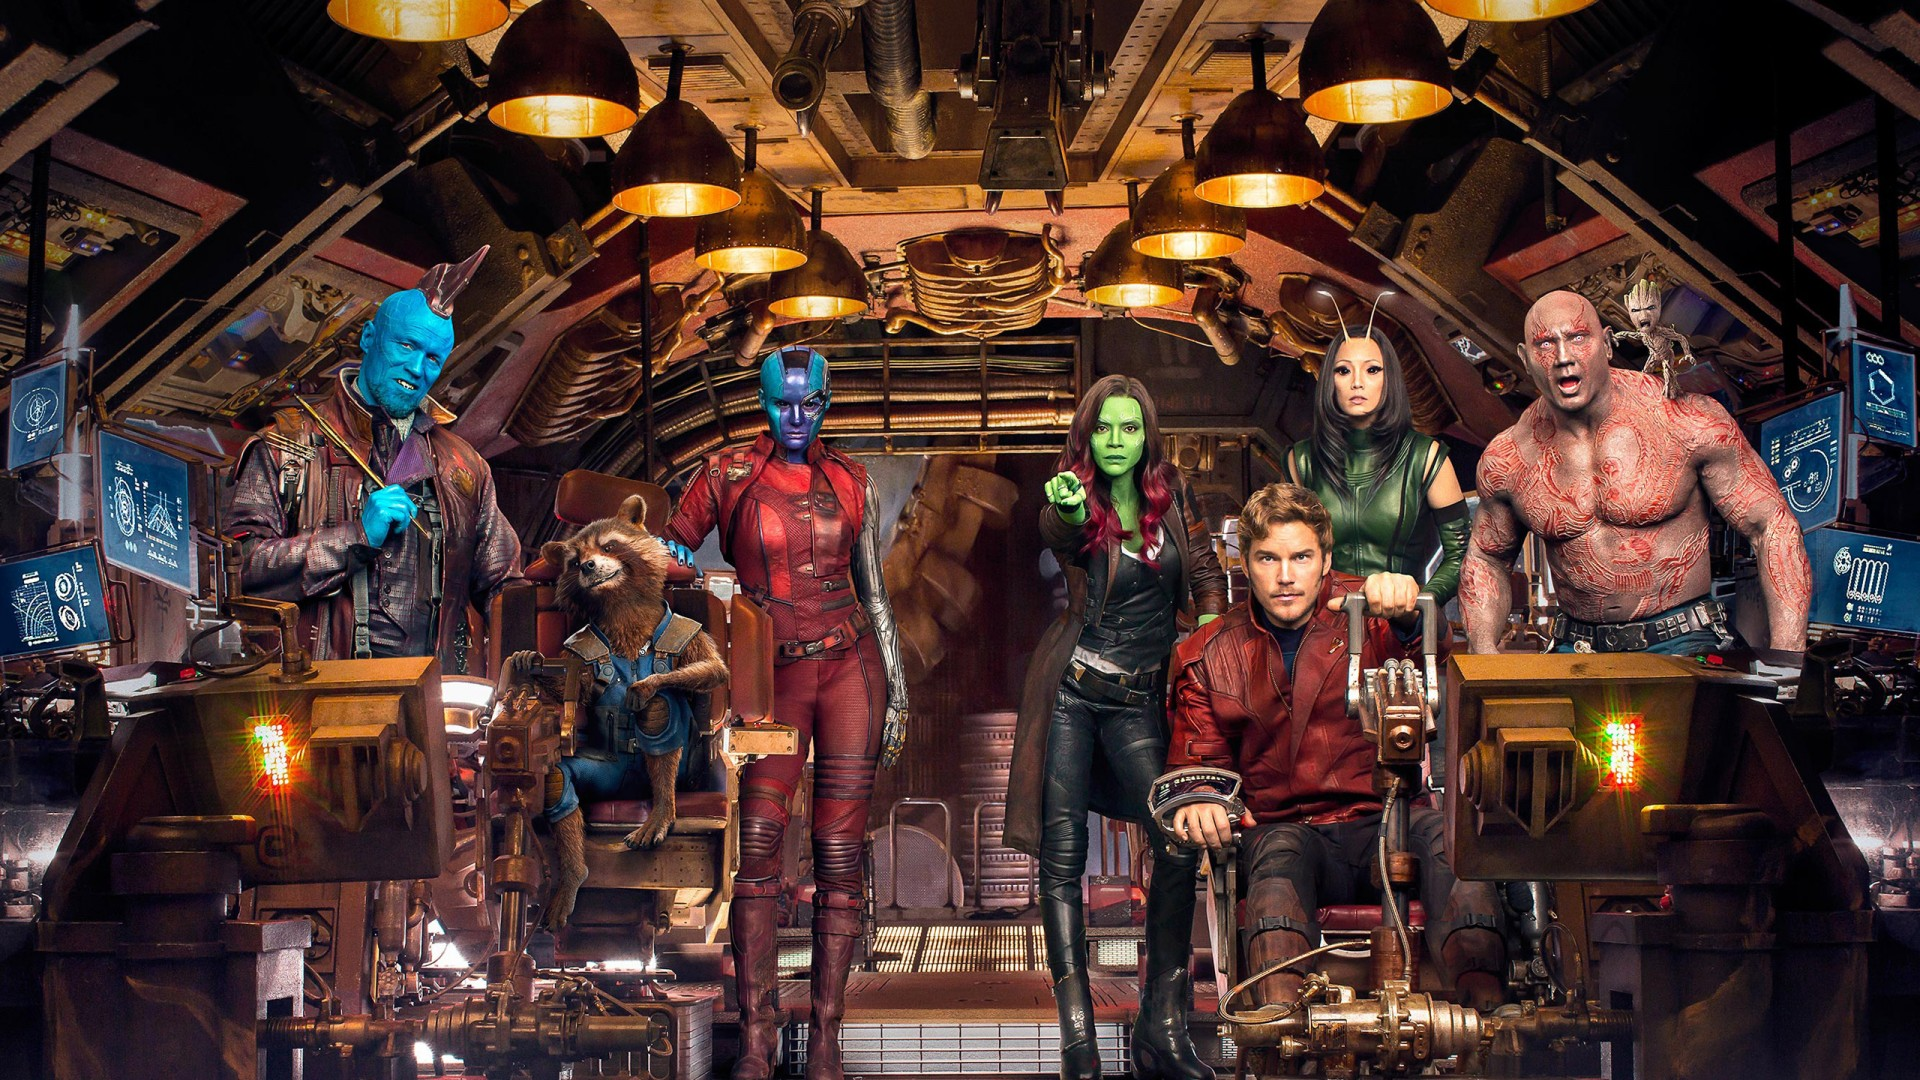 Hd Android Wallpapers 3d Guardians Of The Galaxy Vol 2 Cast Wallpapers Hd